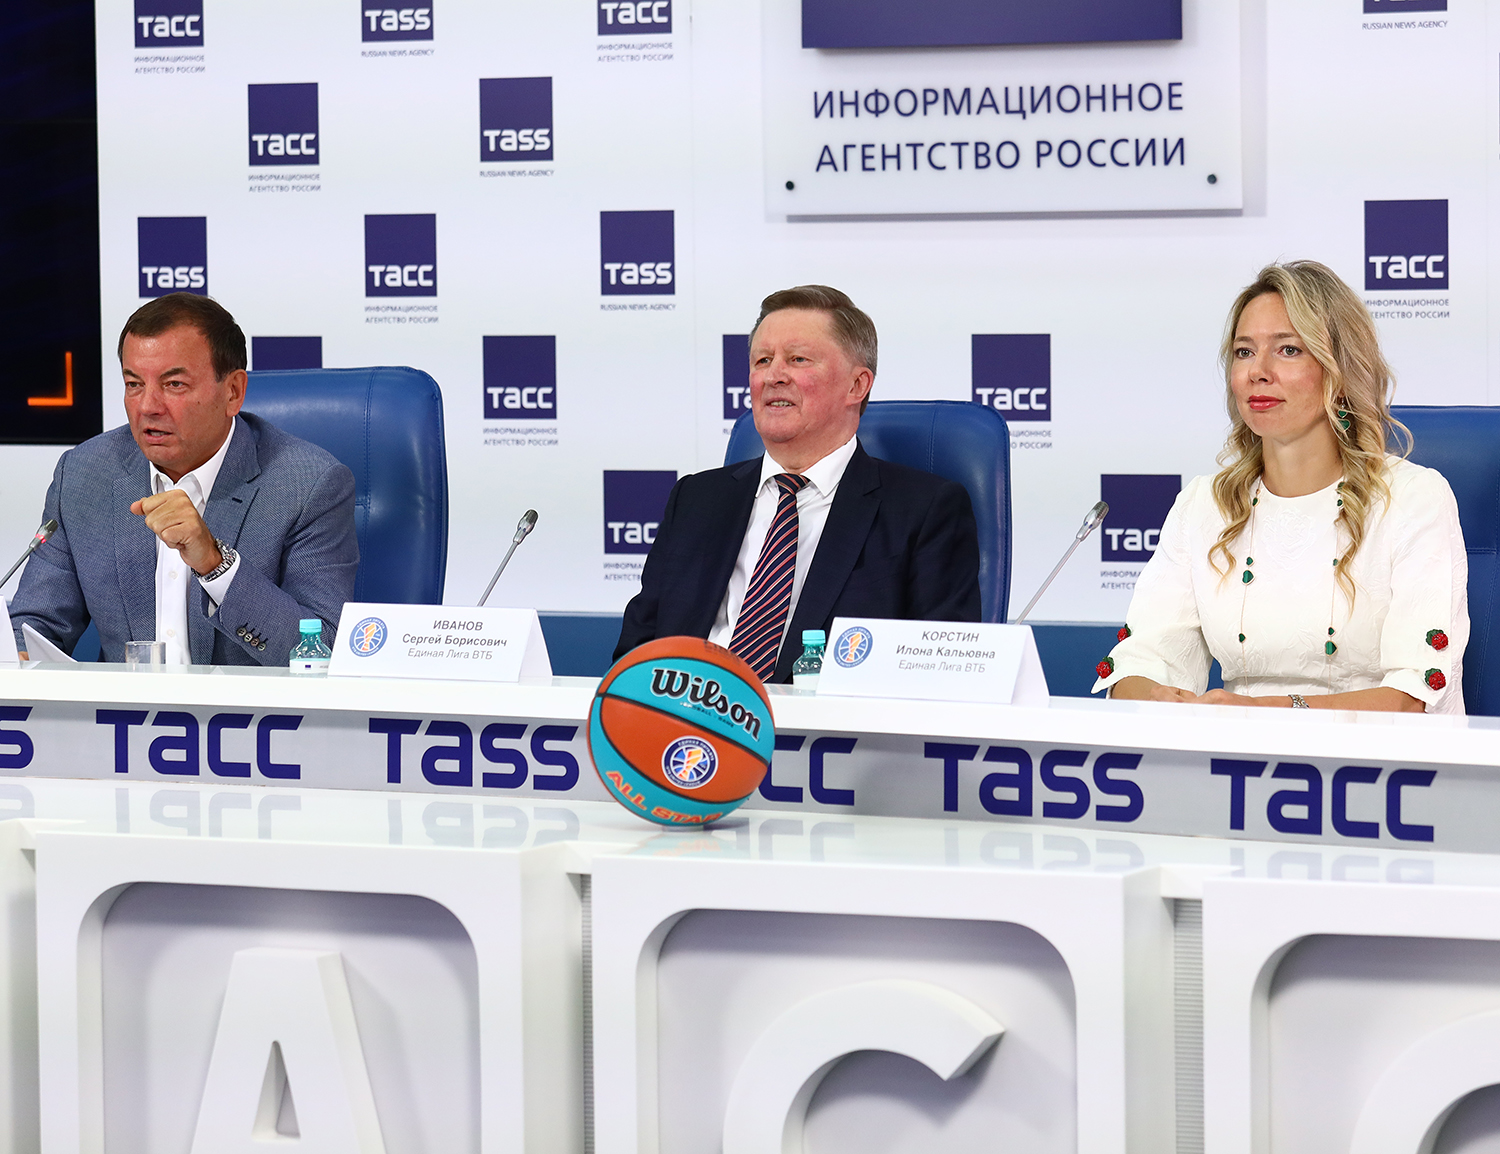 League Board-2021: 12 clubs will play in the 2021/22 season, the SuperCup will be held for the first time in the history of the League.